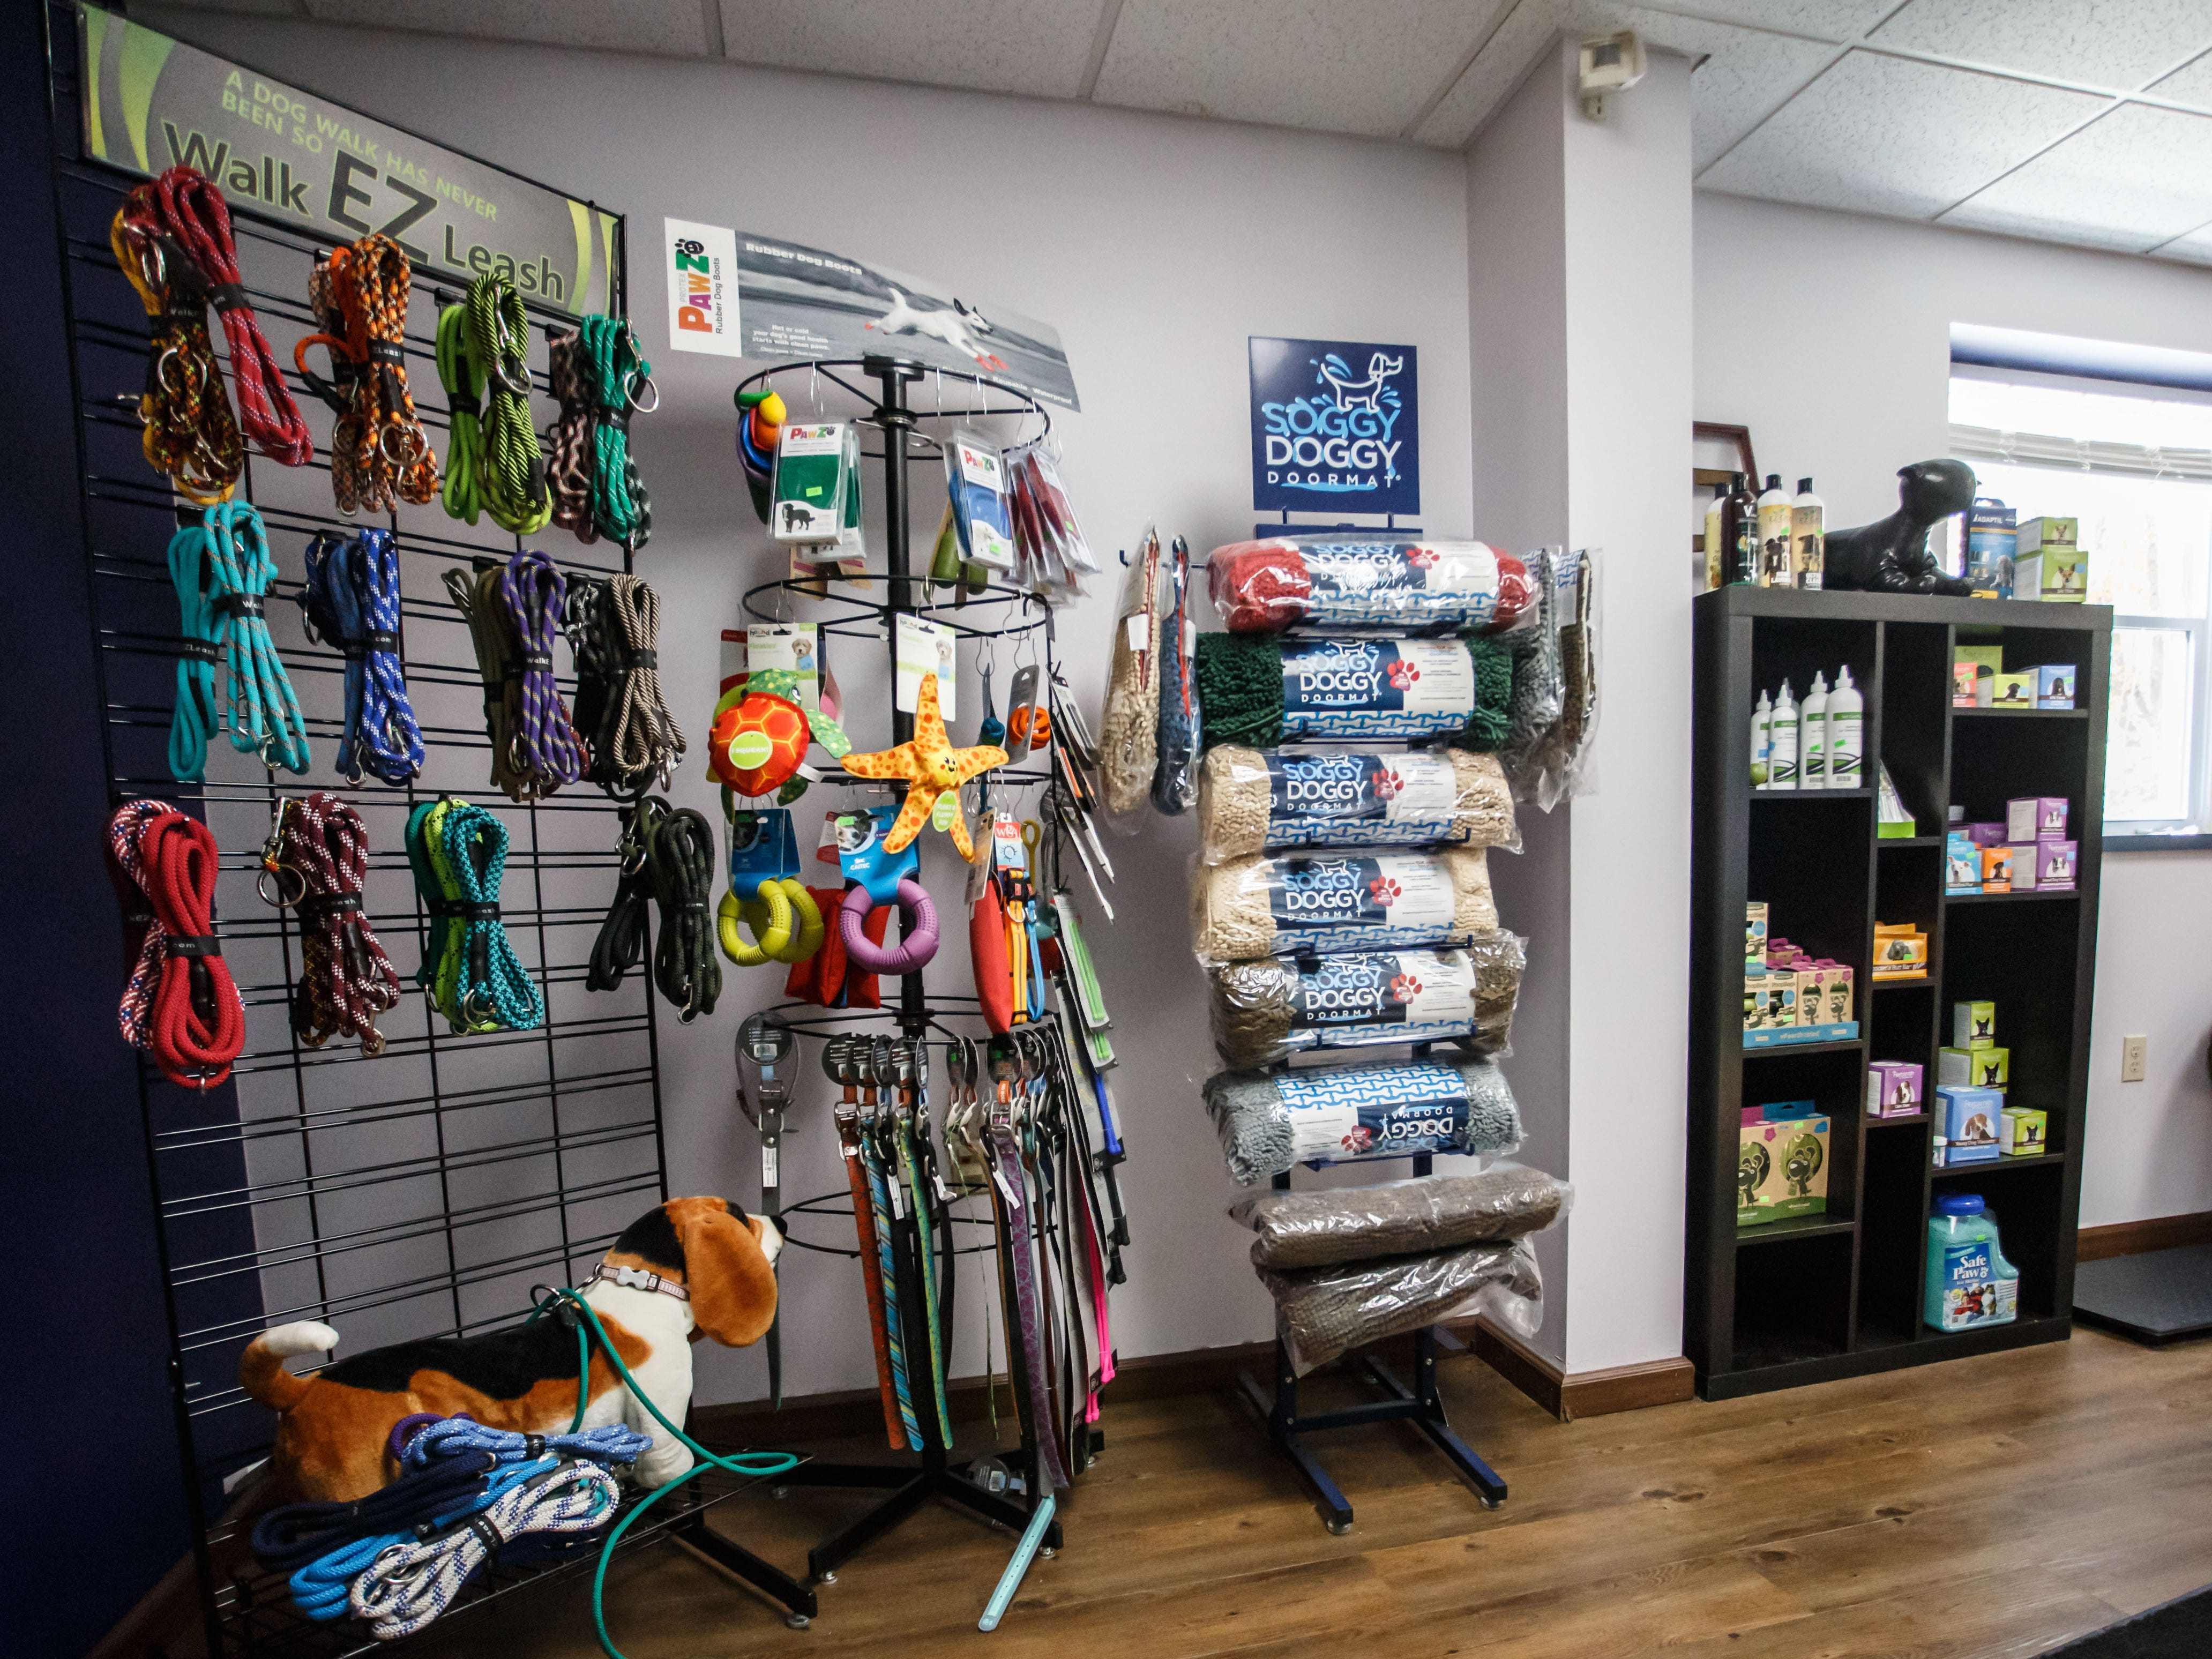 Aqua Therapups in Slinger offers a heated indoor swimming for dogs that can be used for rehabilitation, exercise or just plain fun. They also carry a variety of accessories and doggie safe treats as seen on Monday, Oct. 29, 2018.